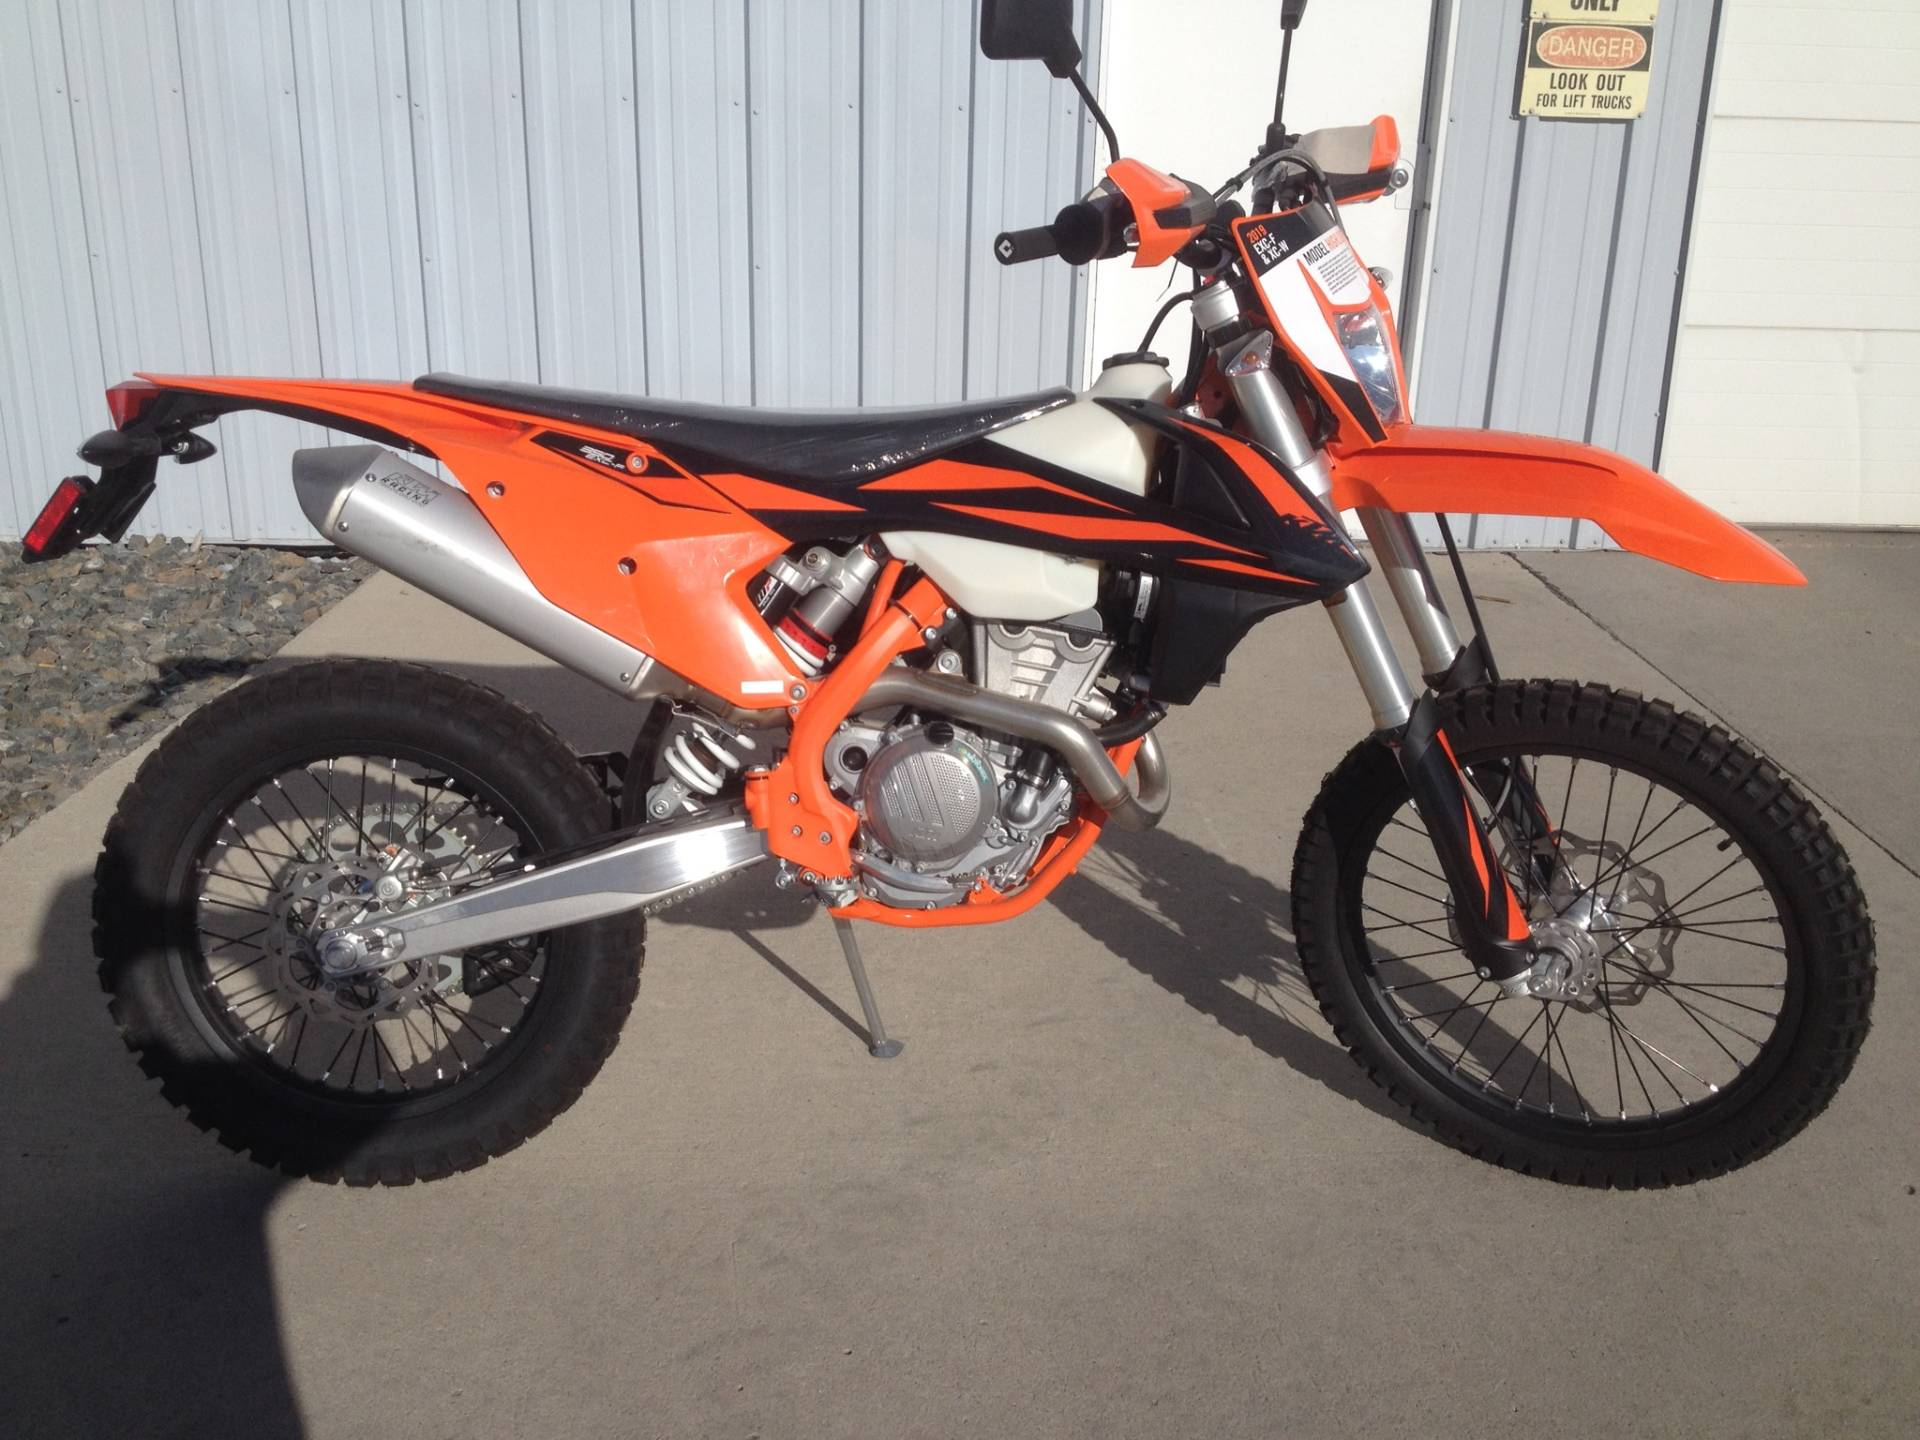 2019 KTM 350 EXC-F in Scottsbluff, Nebraska - Photo 1